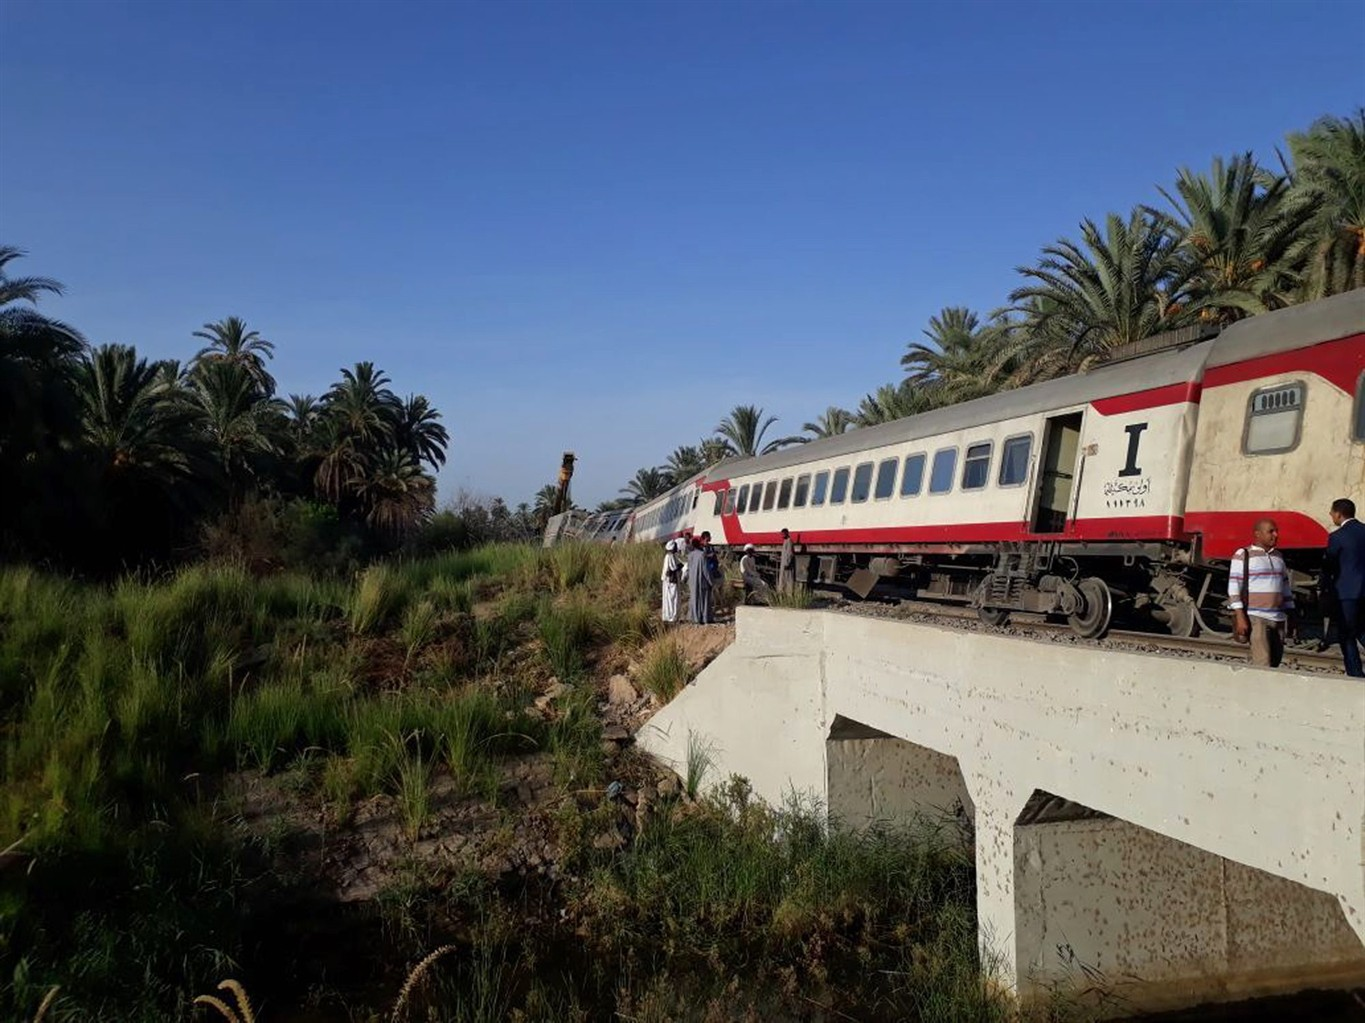 All Trains in Egypt Will Operate with Zero Passengers in Their Last Car ... Why you Say?